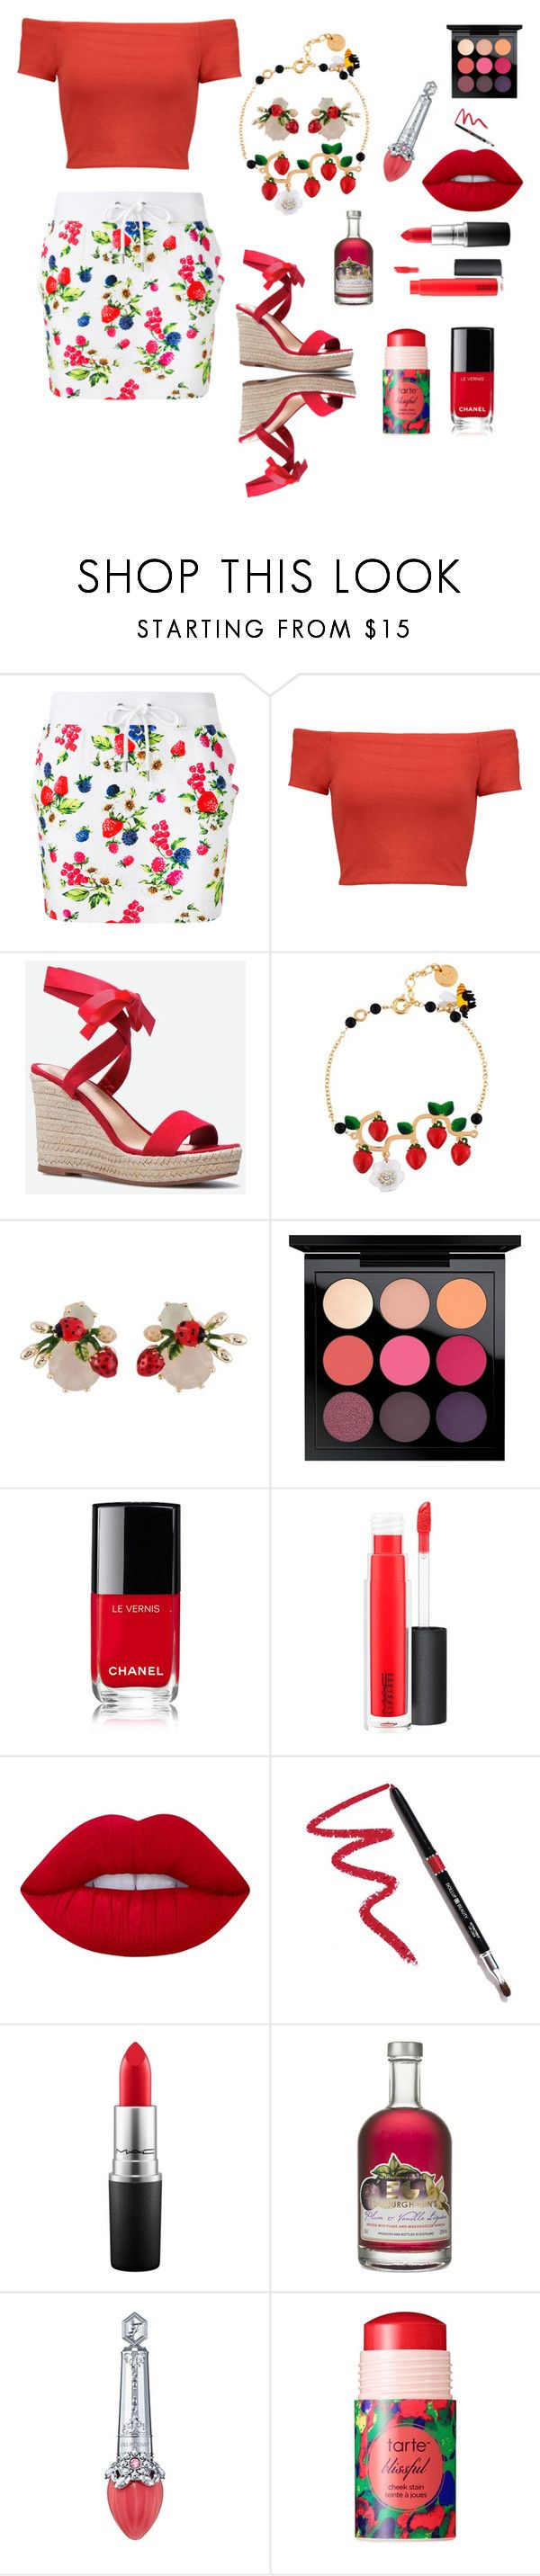 """The Berries!!"" by siriusfunbysheila1954 ❤ liked on Polyvore featuring Love Moschino, Alice + Olivia, JustFab, Les Néréides, MAC Cosmetics, Chanel, Lime Crime, Dollup Beauty, Morgan Lane and tarte"